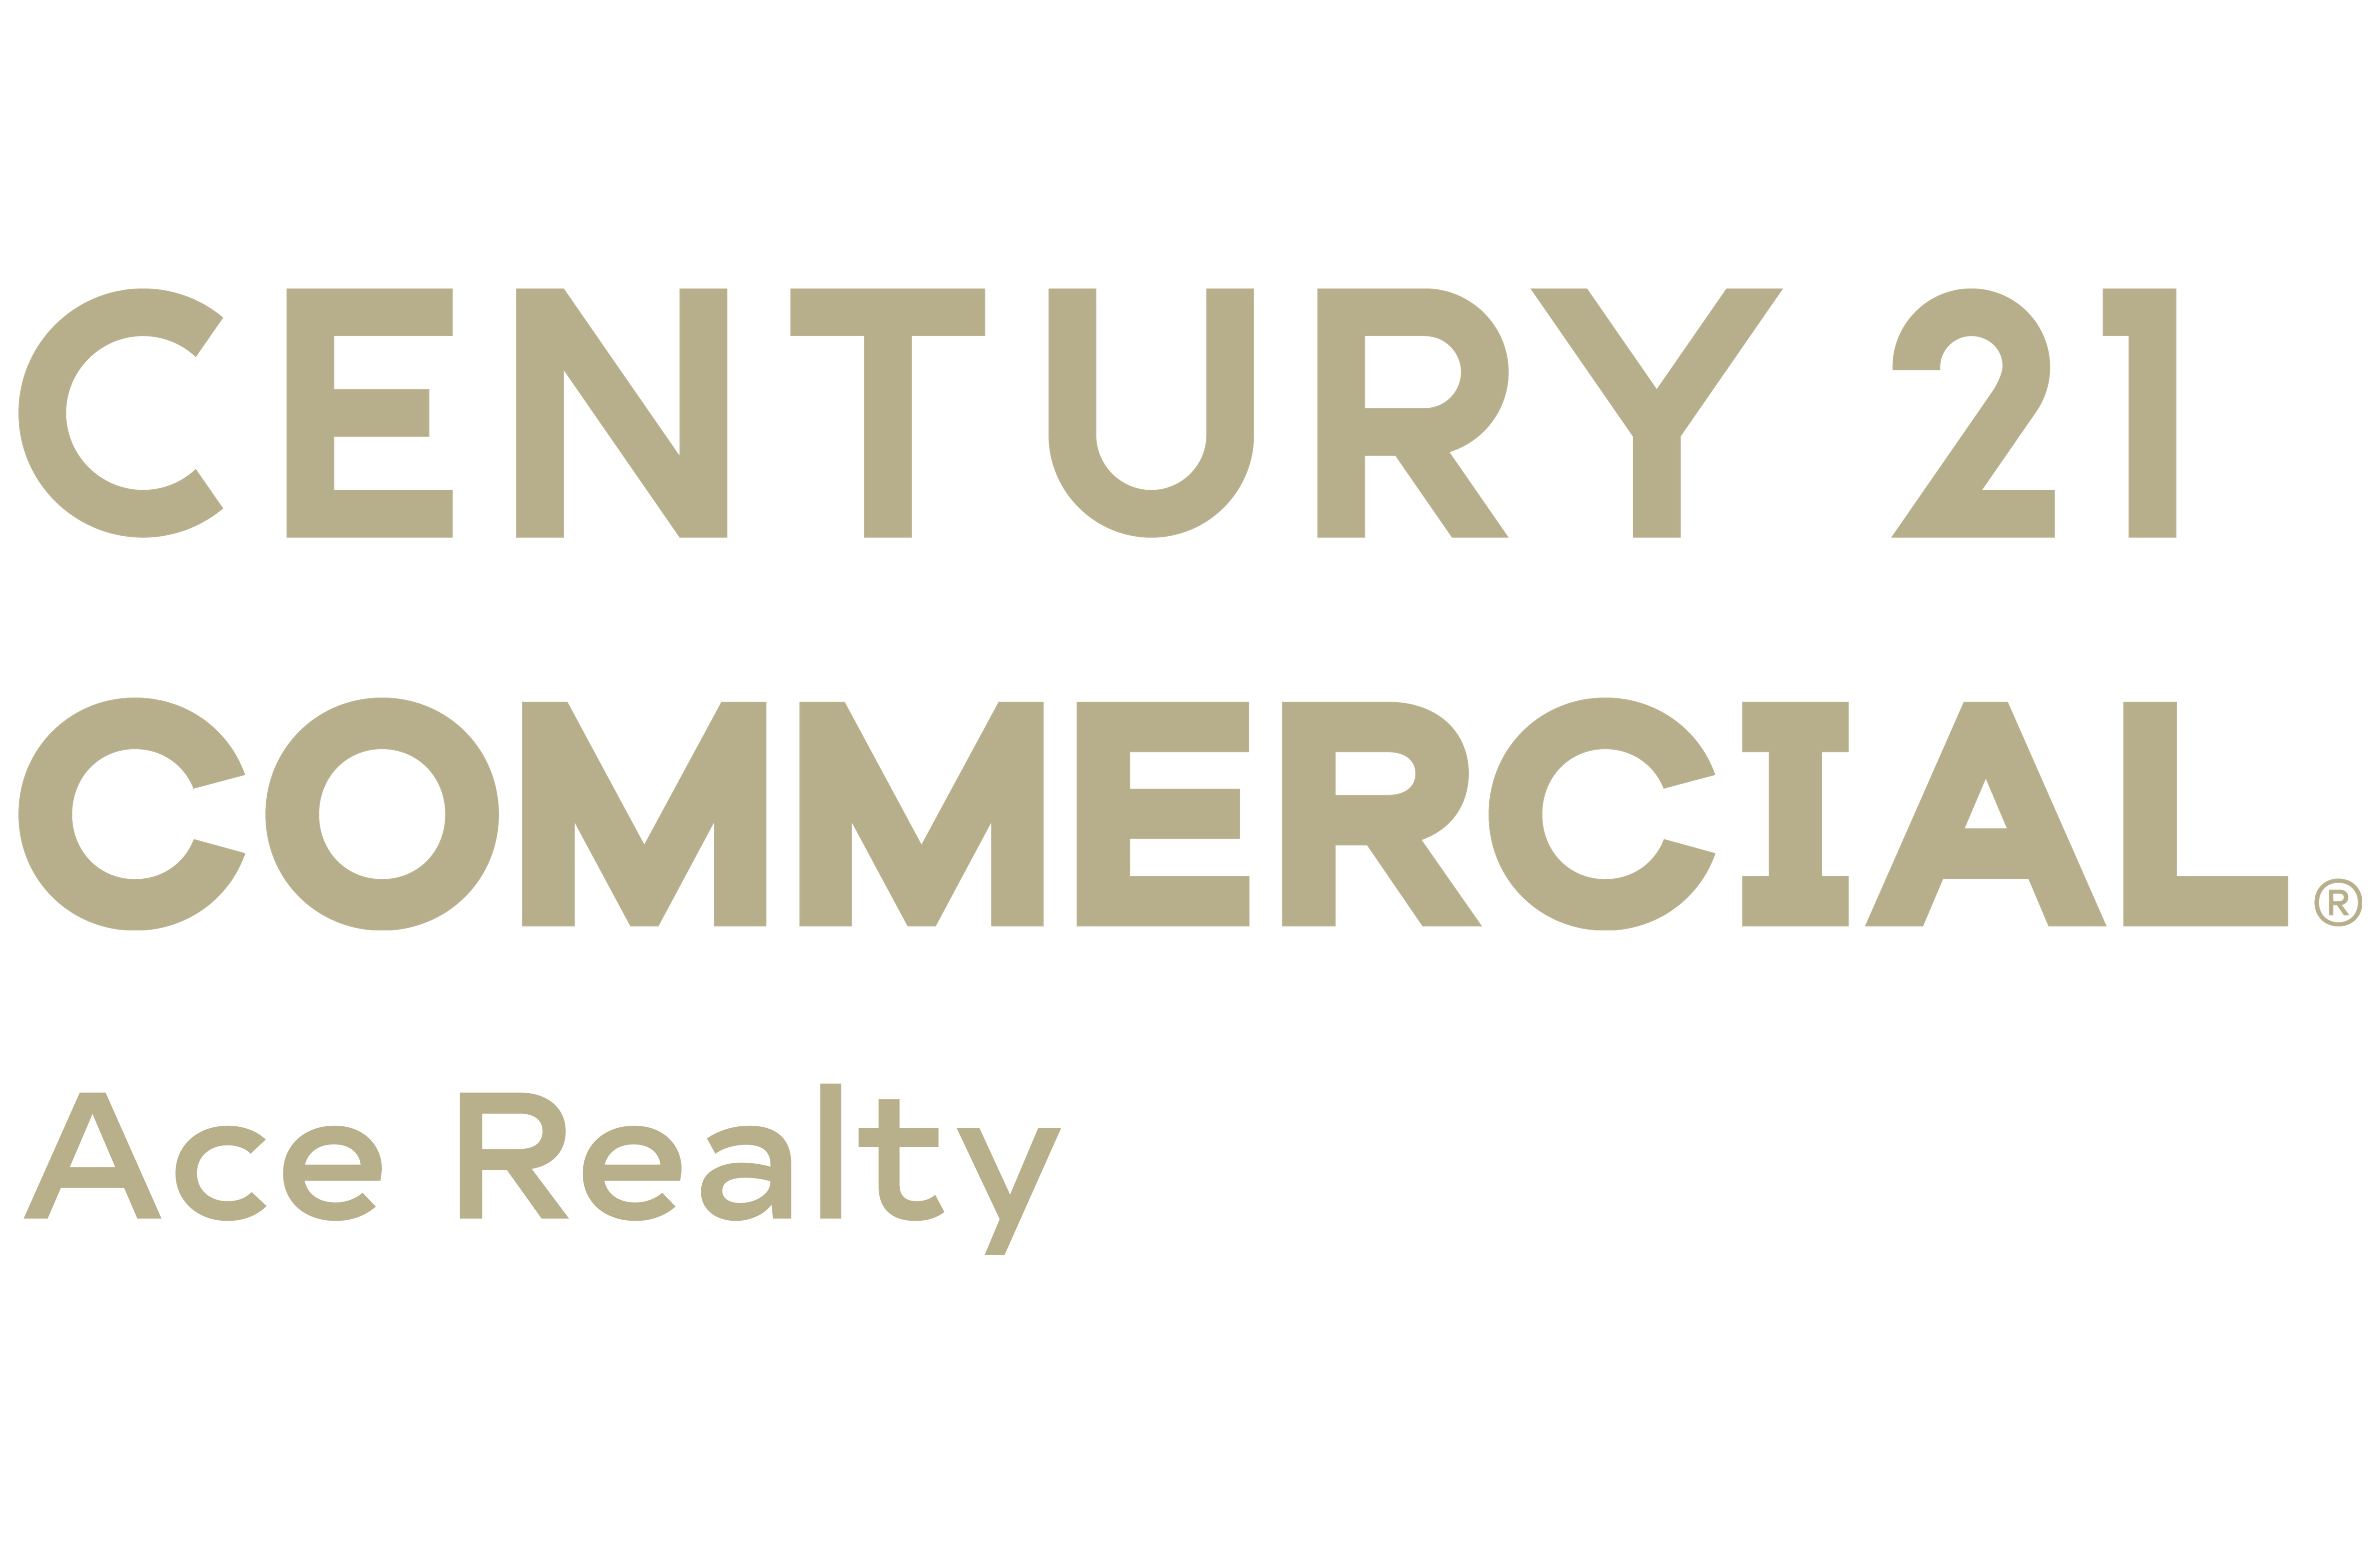 CENTURY 21 Ace Realty